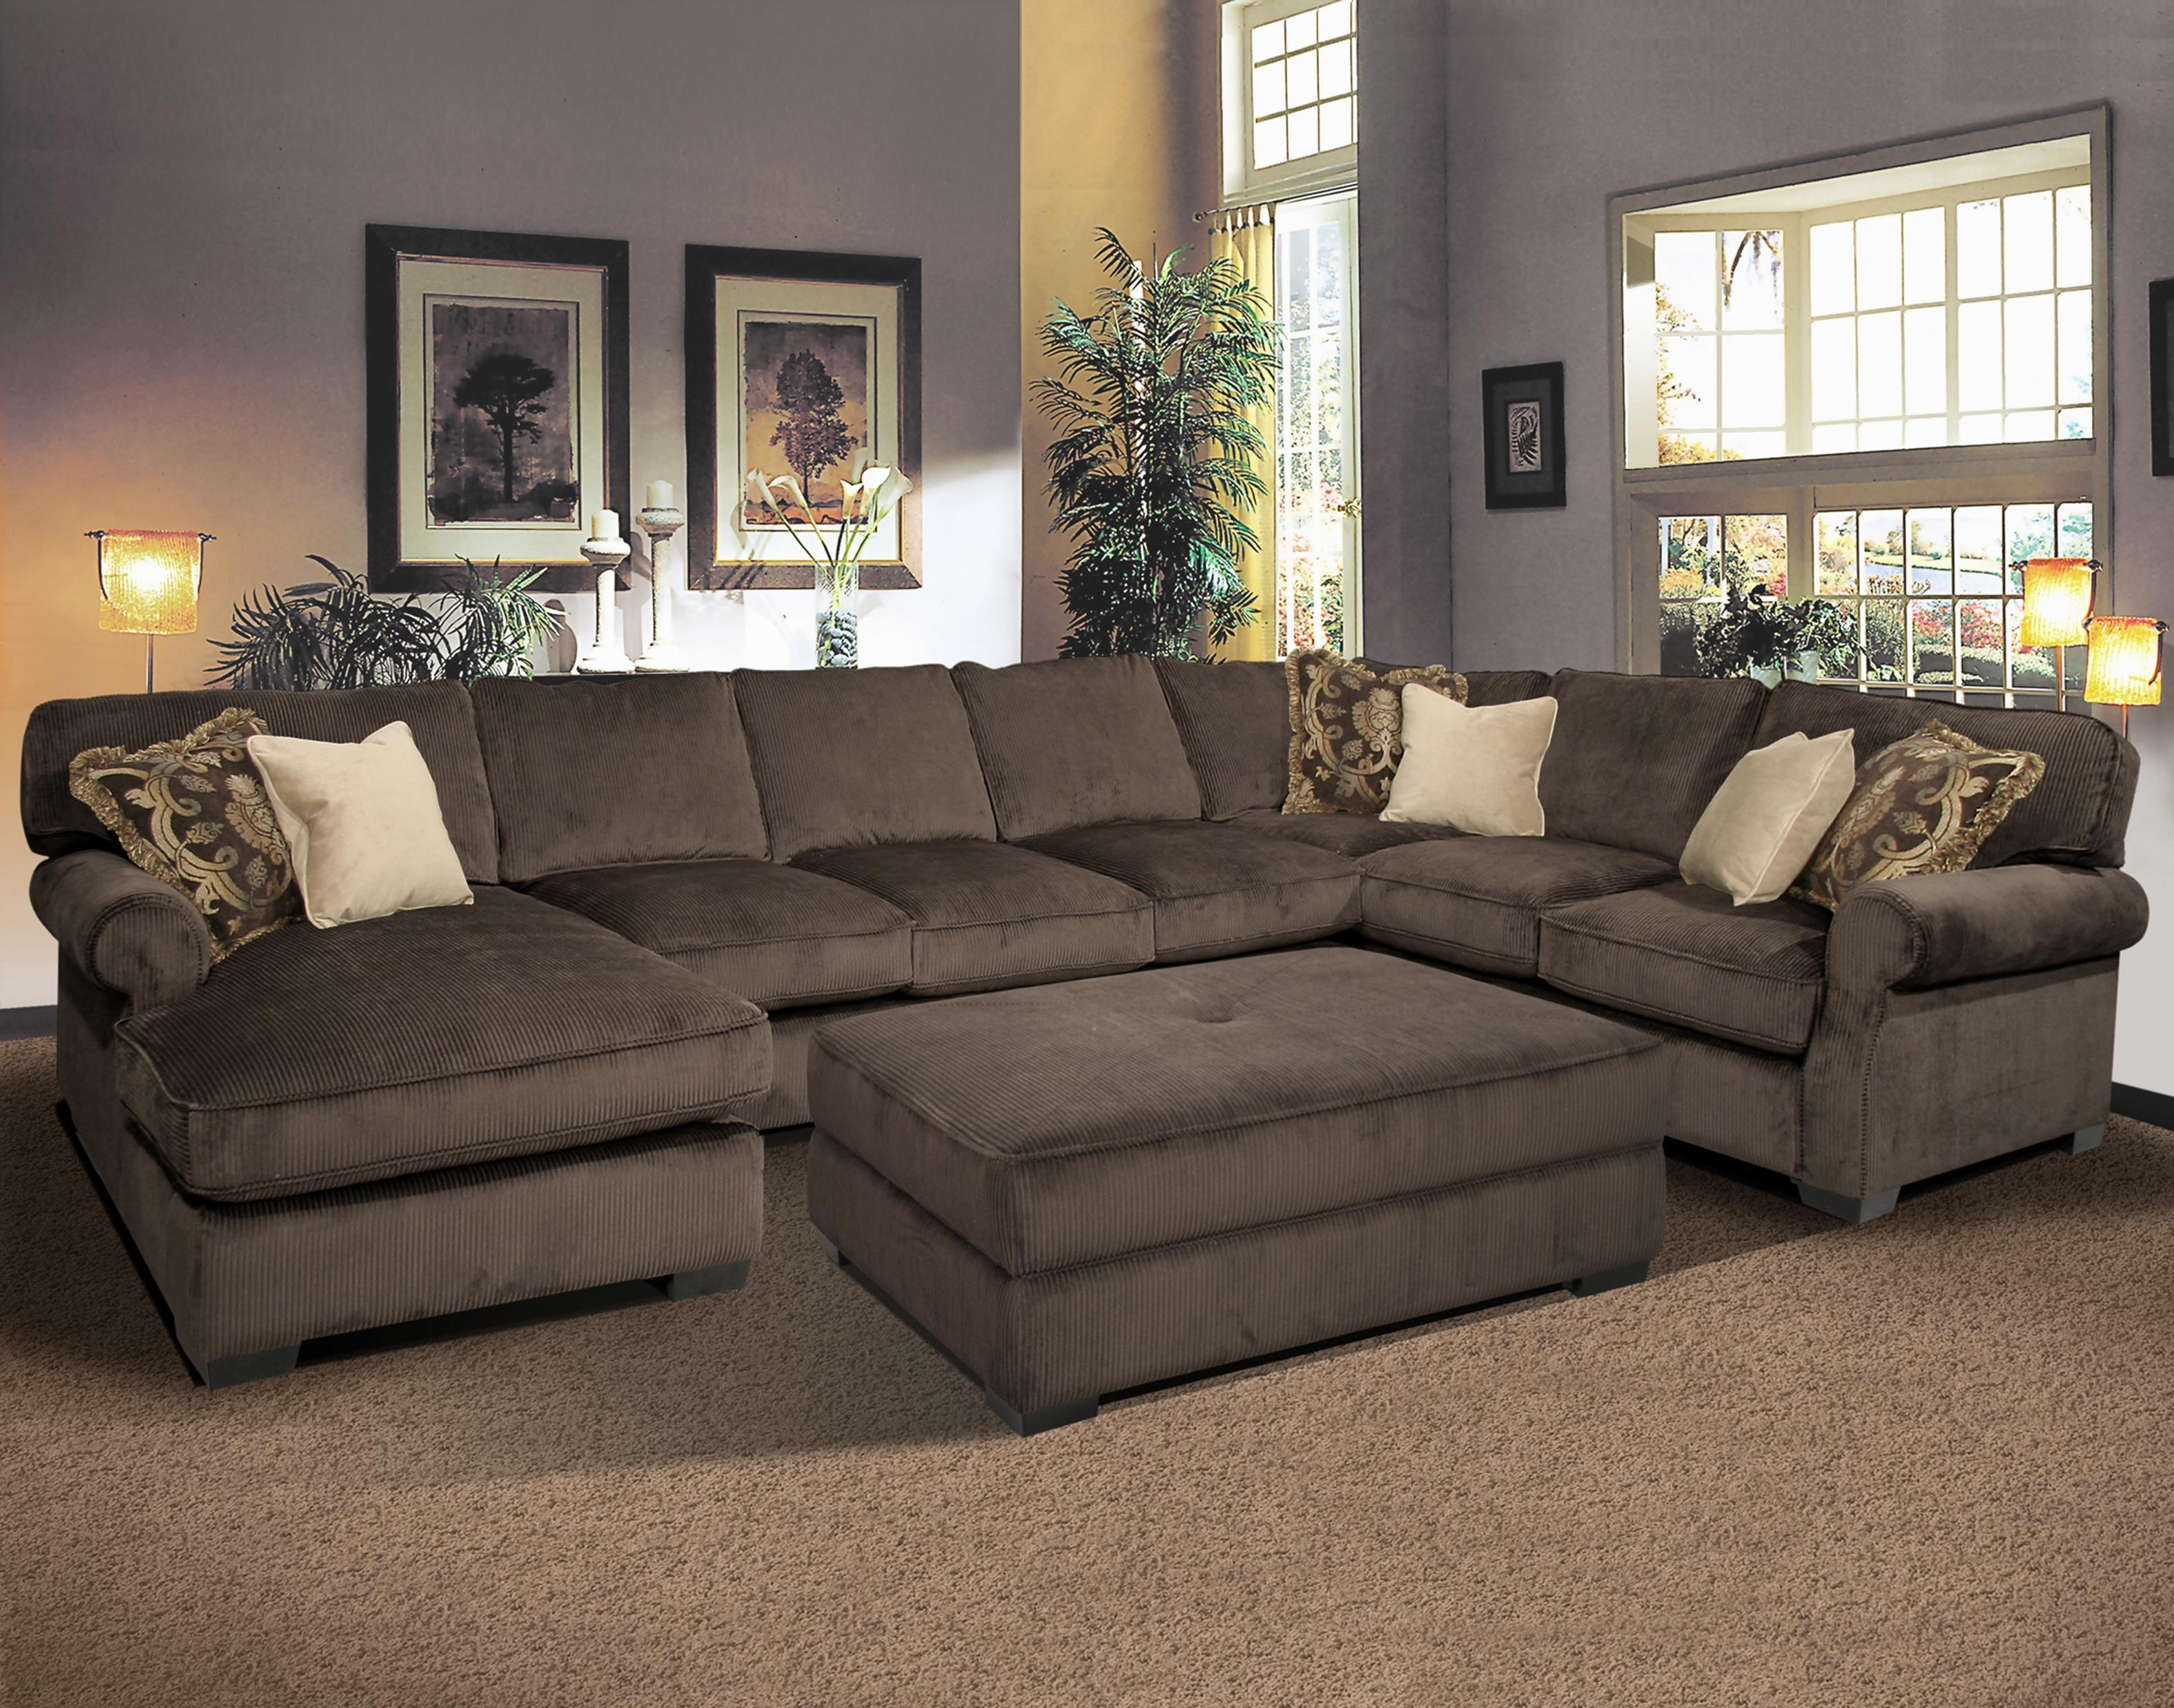 Sofas Center : Cozyown Filled Sectional Sofa For Find Small Sofas Throughout Down Filled Sofas And Sectionals (View 11 of 15)